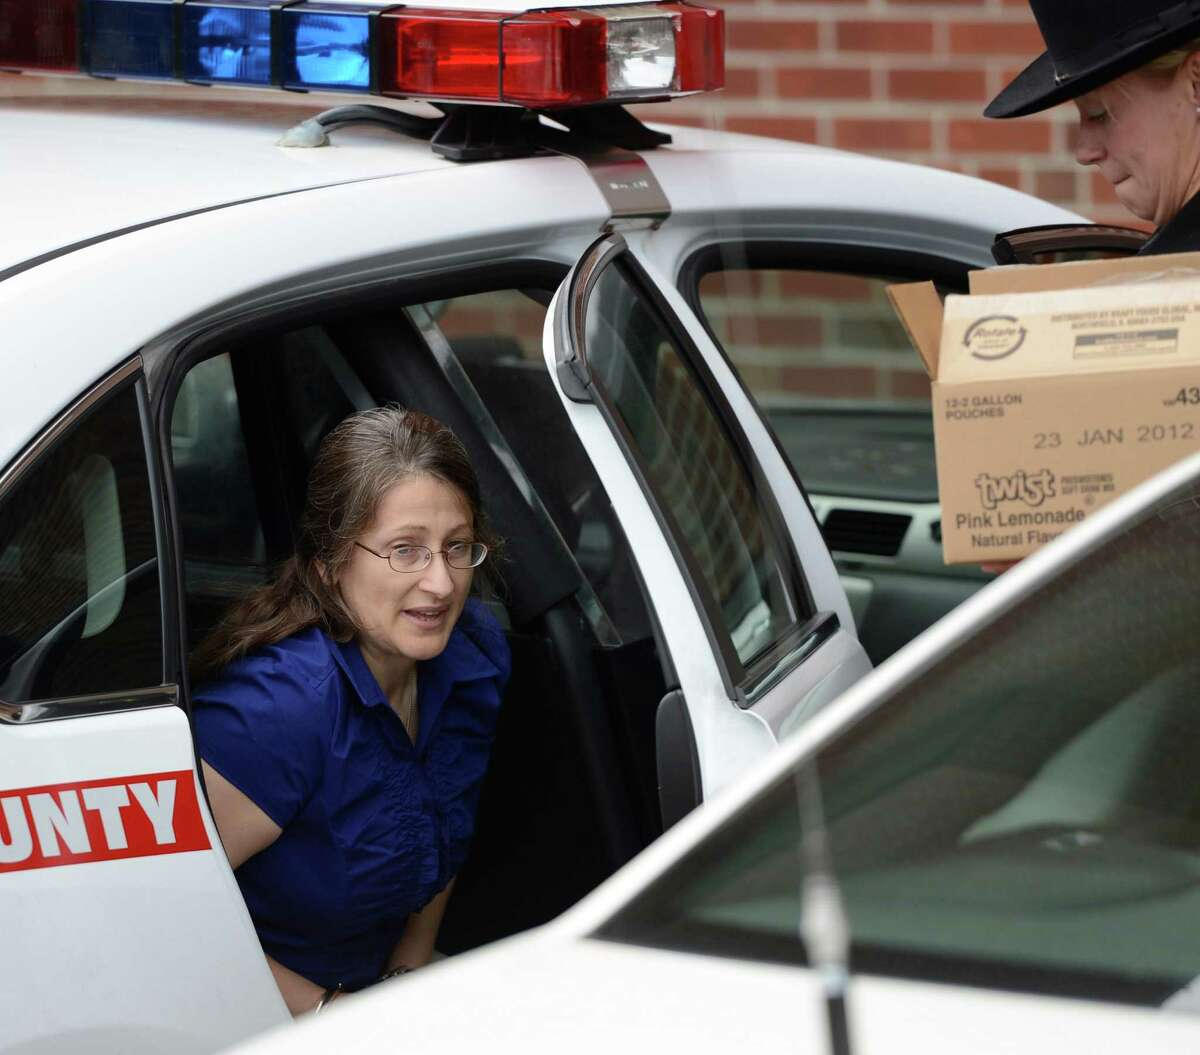 Lydia Salce, 50 exits a Sheriff's cruiser before she enters the Saratoga County Courthouse in Ballston Spa, N.Y. June 26, 2012 for opening arguments in her attempted murder trial where she is charged with allegedly stabbing her husband more than a dozen times during a domestic dispute last summer. (Skip Dickstein / Times Union)